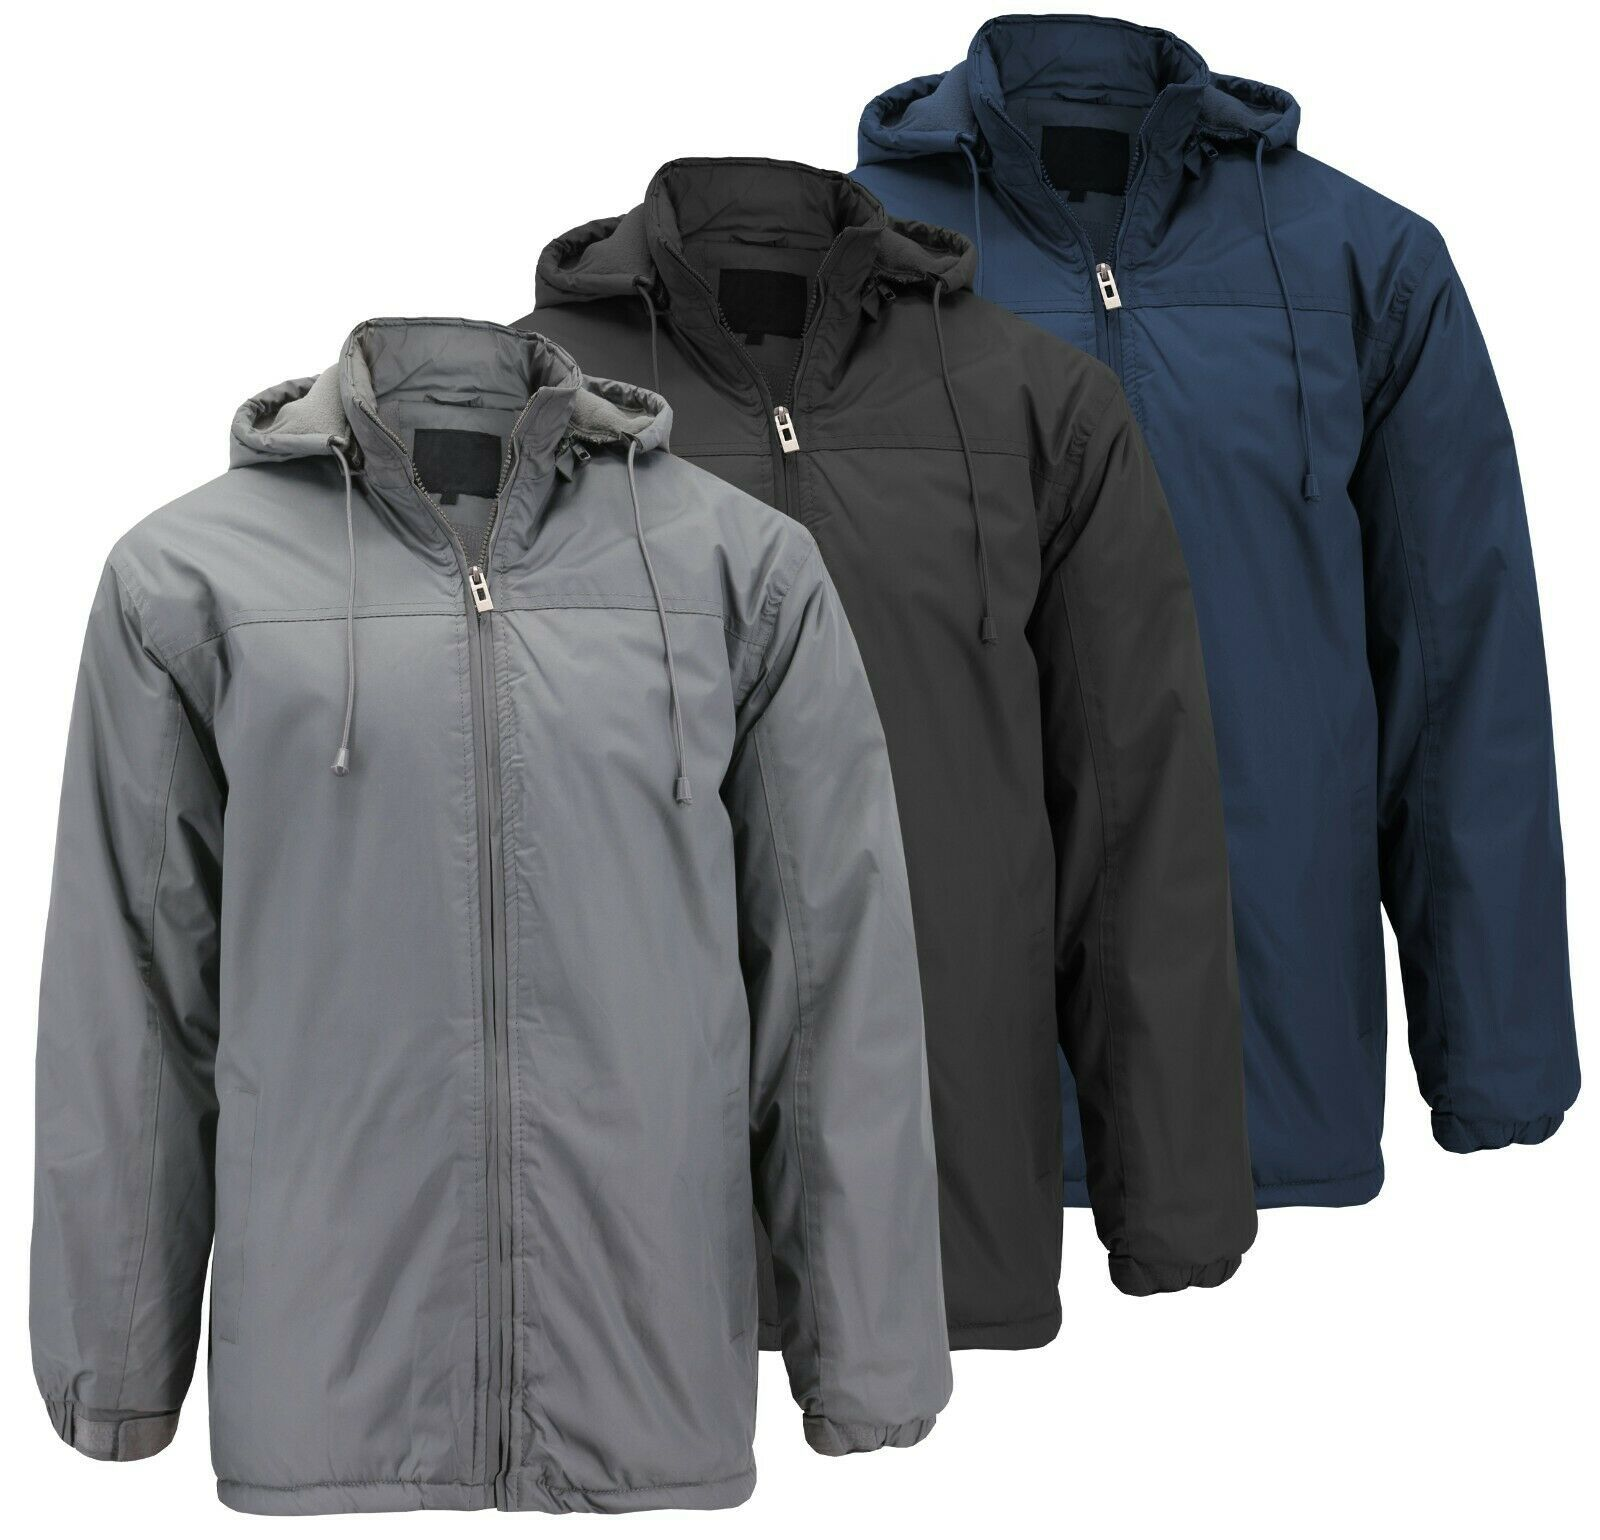 Men's Heavyweight Polar Fleece Zip Up Windbreaker Hood Insulated Jacket